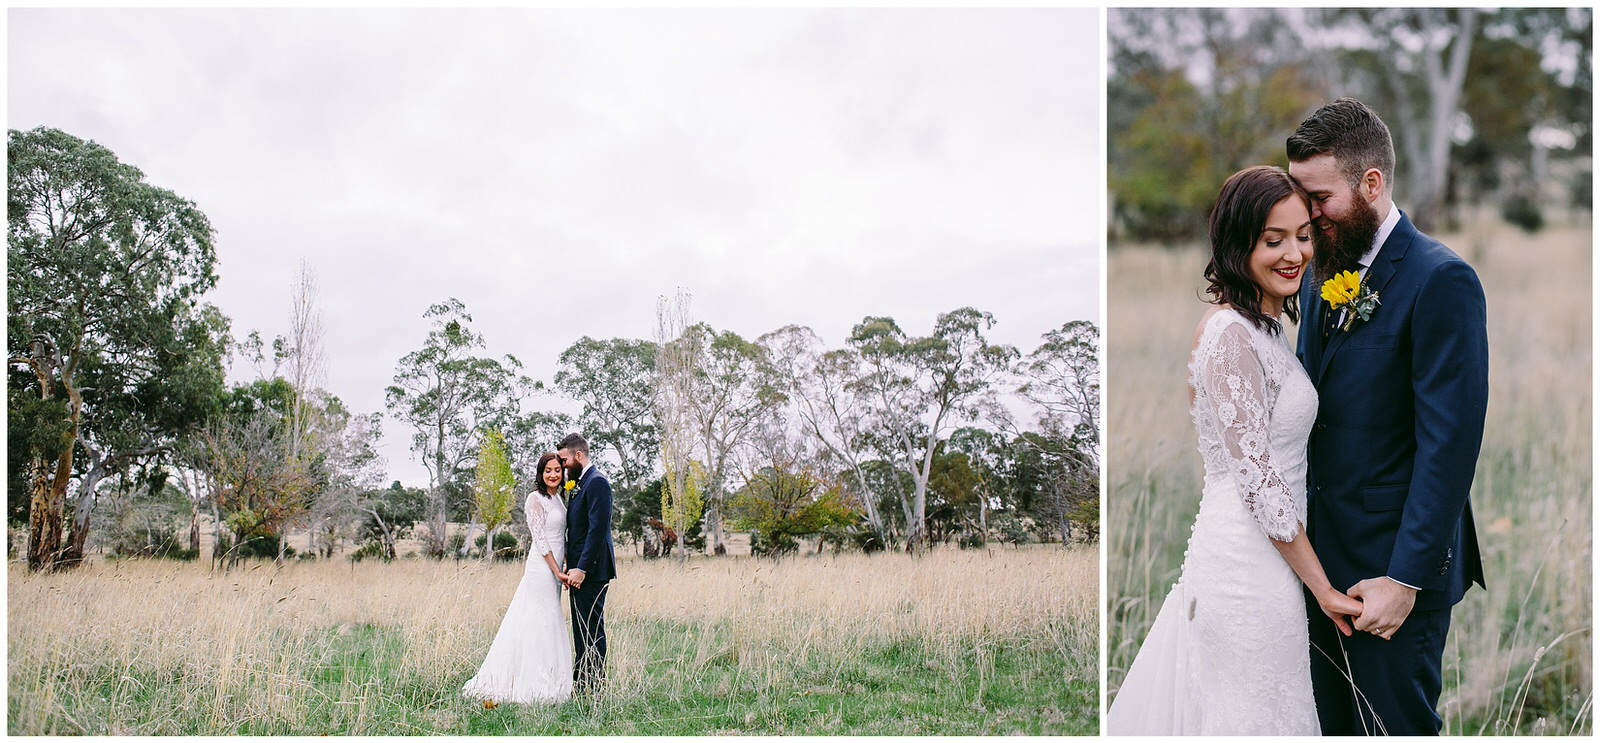 Al Ru Farm Wedding Photographer Adelaide Autumn Photography